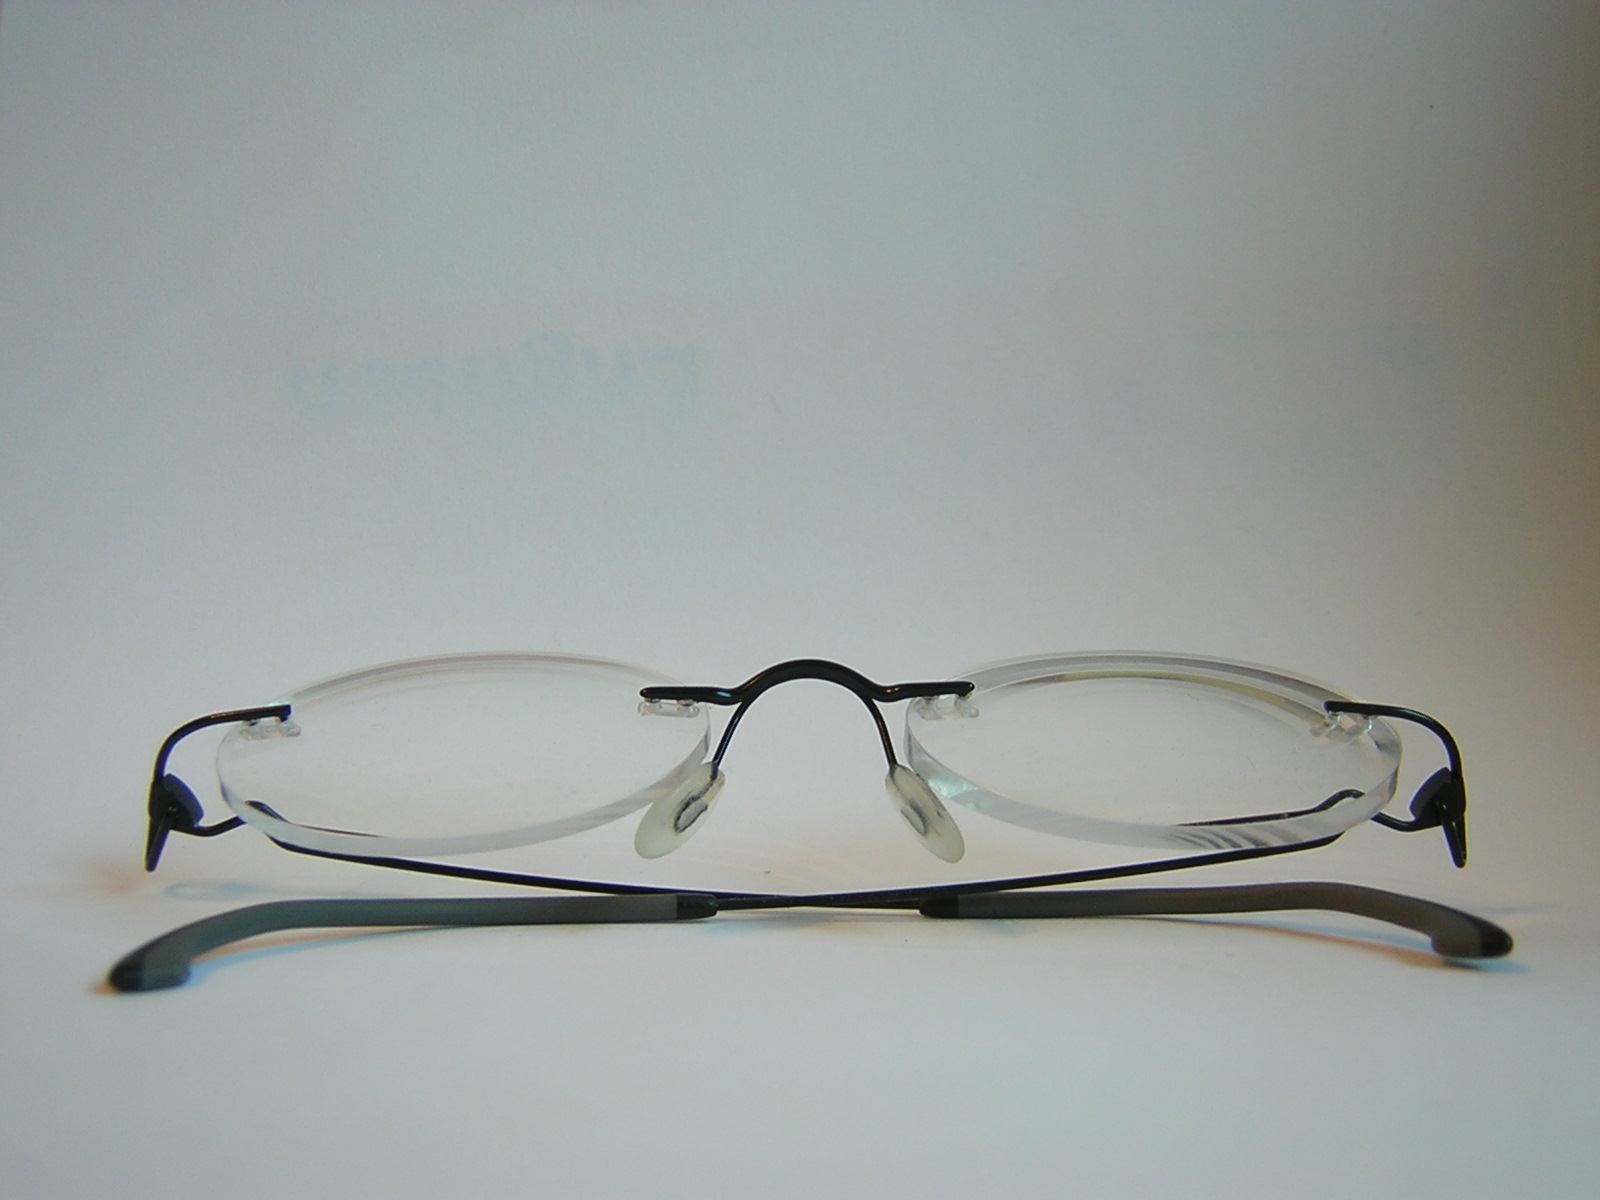 File:No frame glasses.JPG